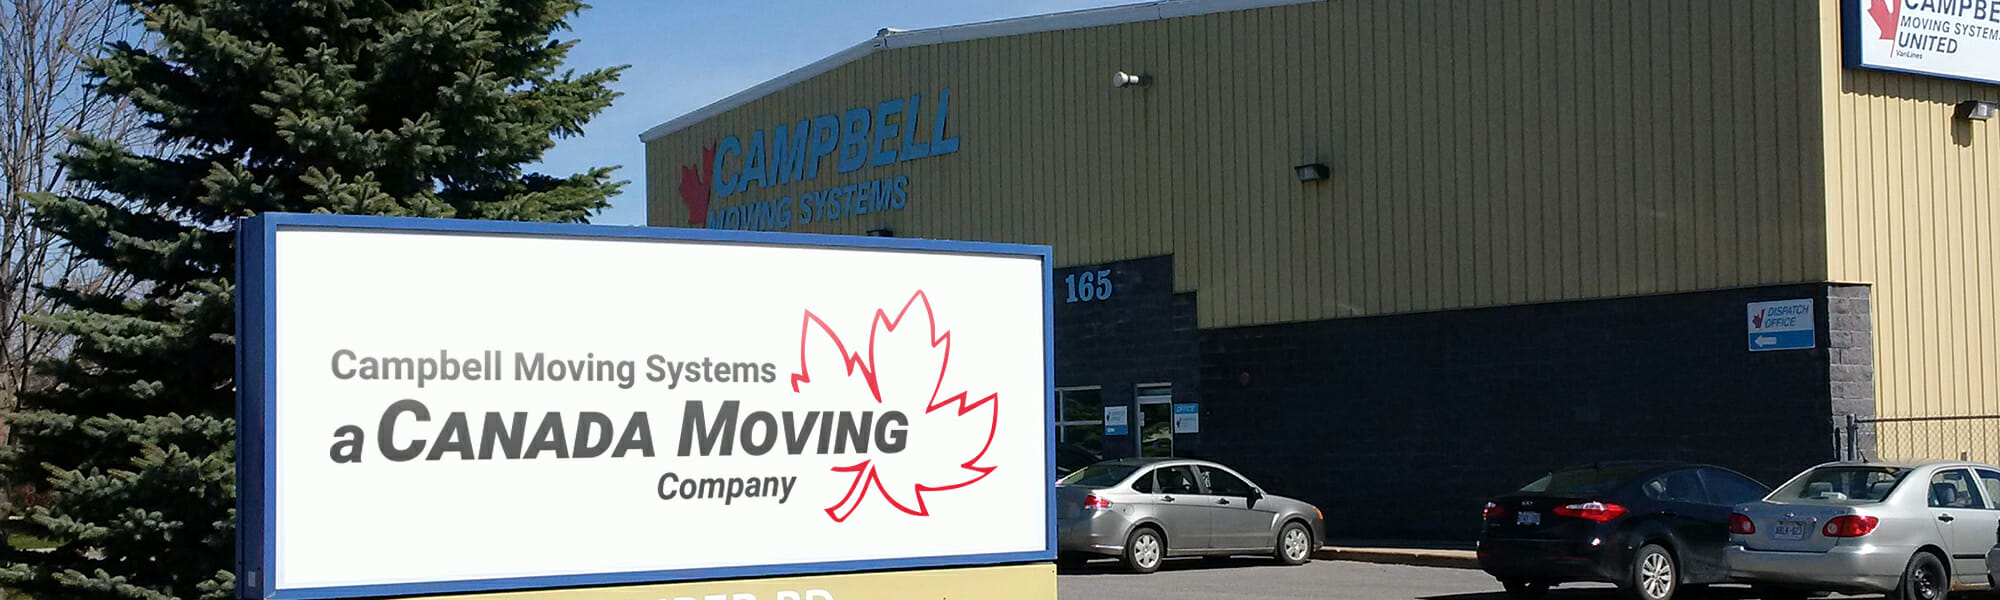 Stittsville-ottawa-Campbell-canada-moving